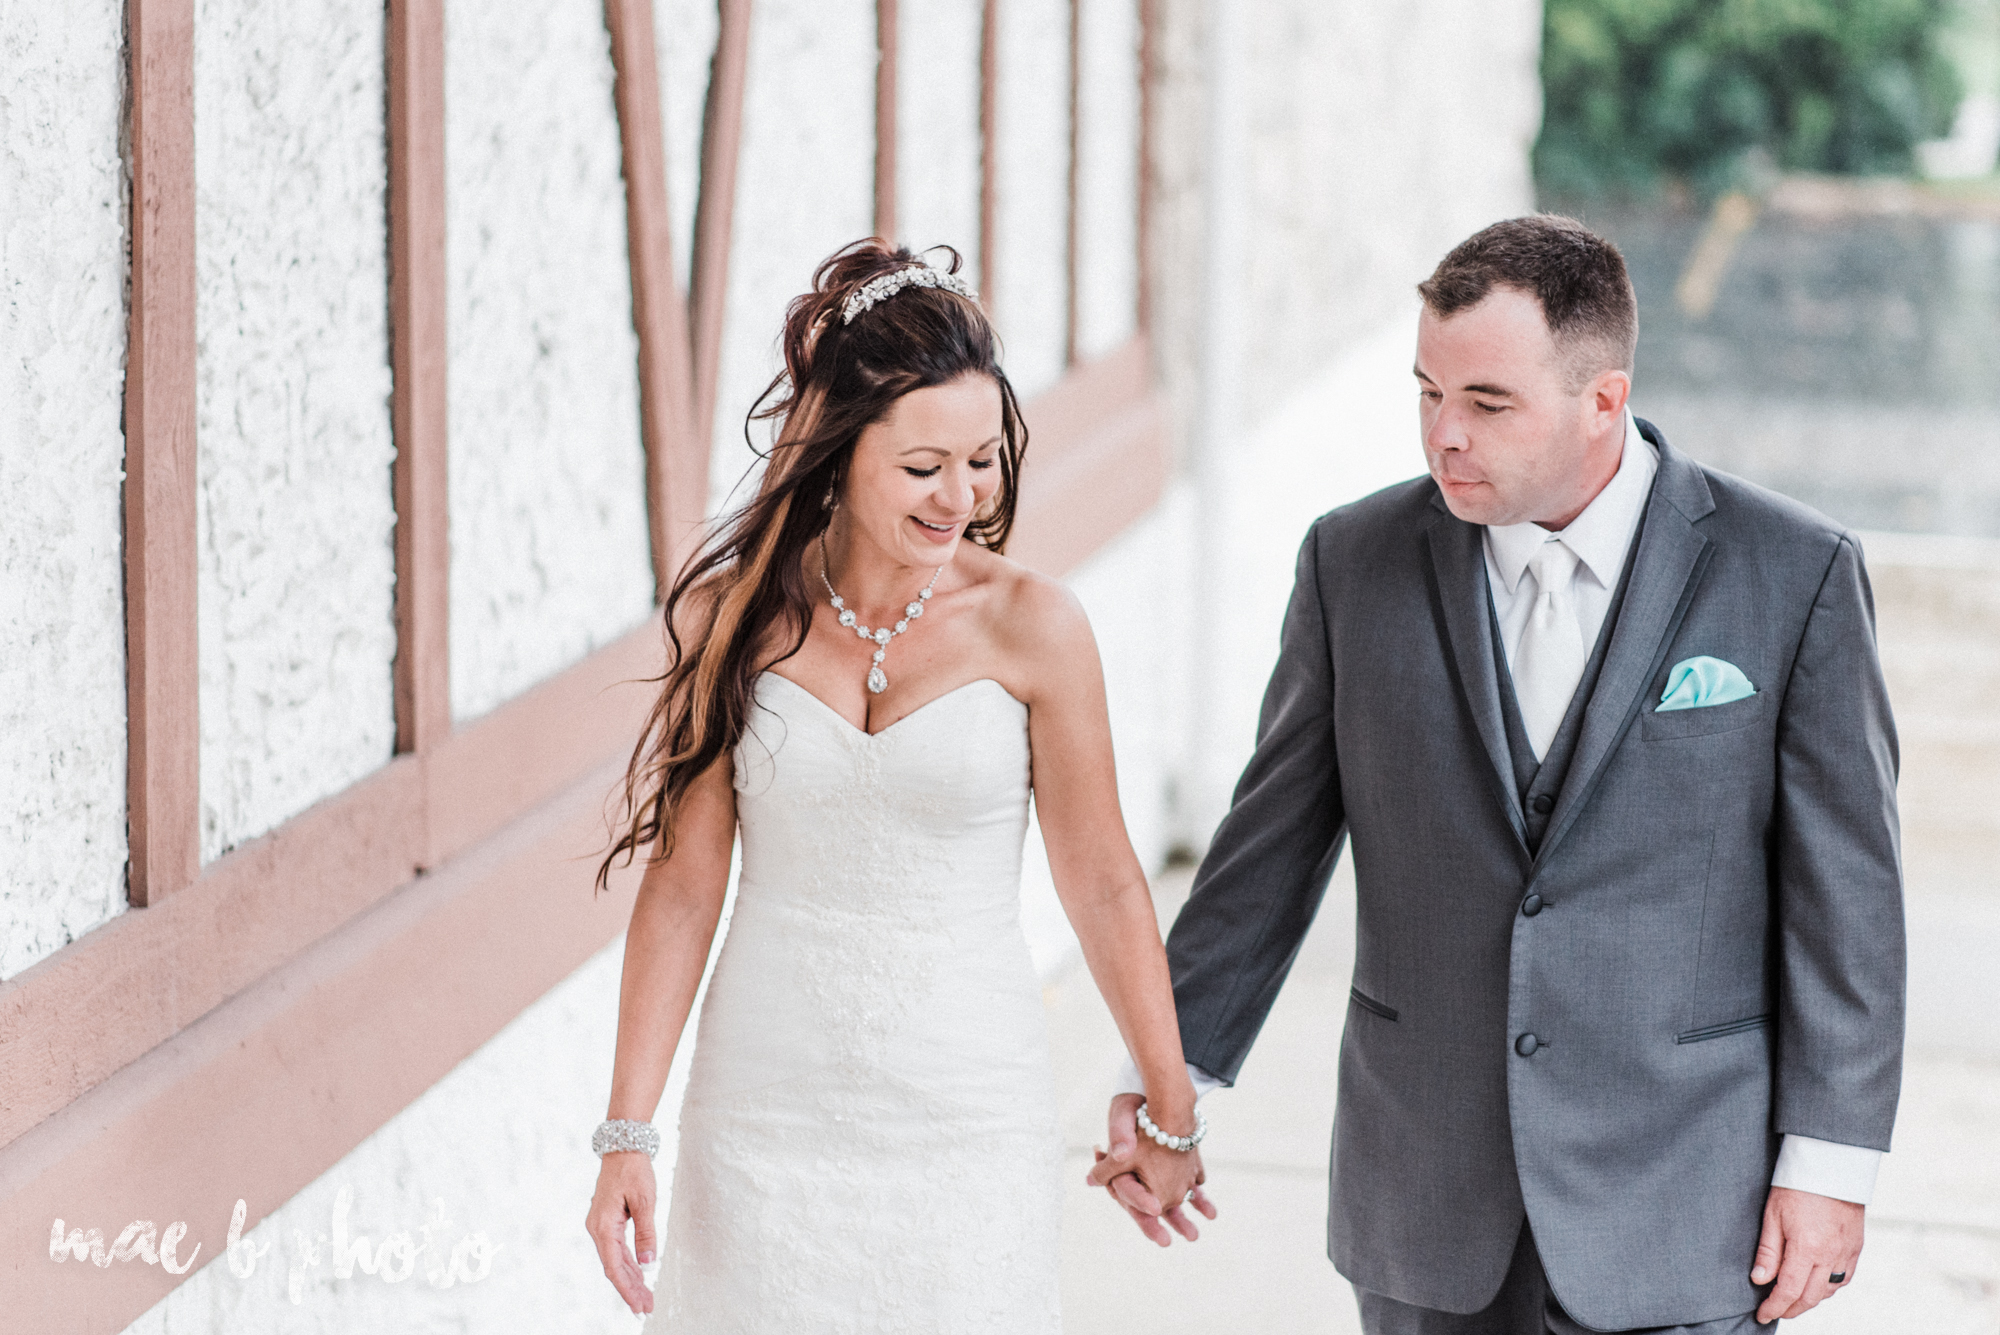 kristy and matt's summer wedding at the embassy in youngstown ohio photographed by youngstown wedding photographer mae b photo-25.jpg